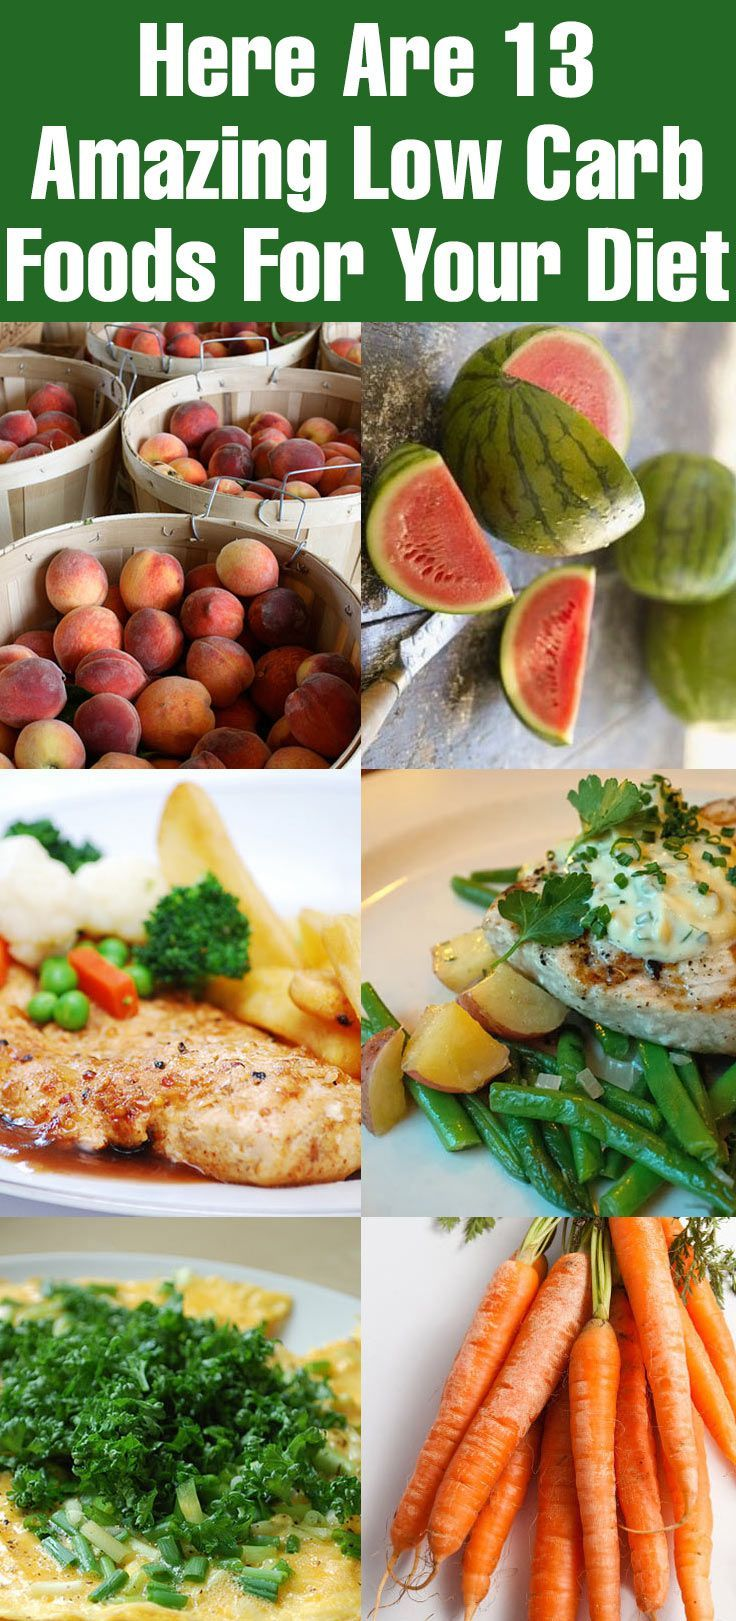 Low Carb Diet: What To Eat, Advantages, And Disadvantages ...